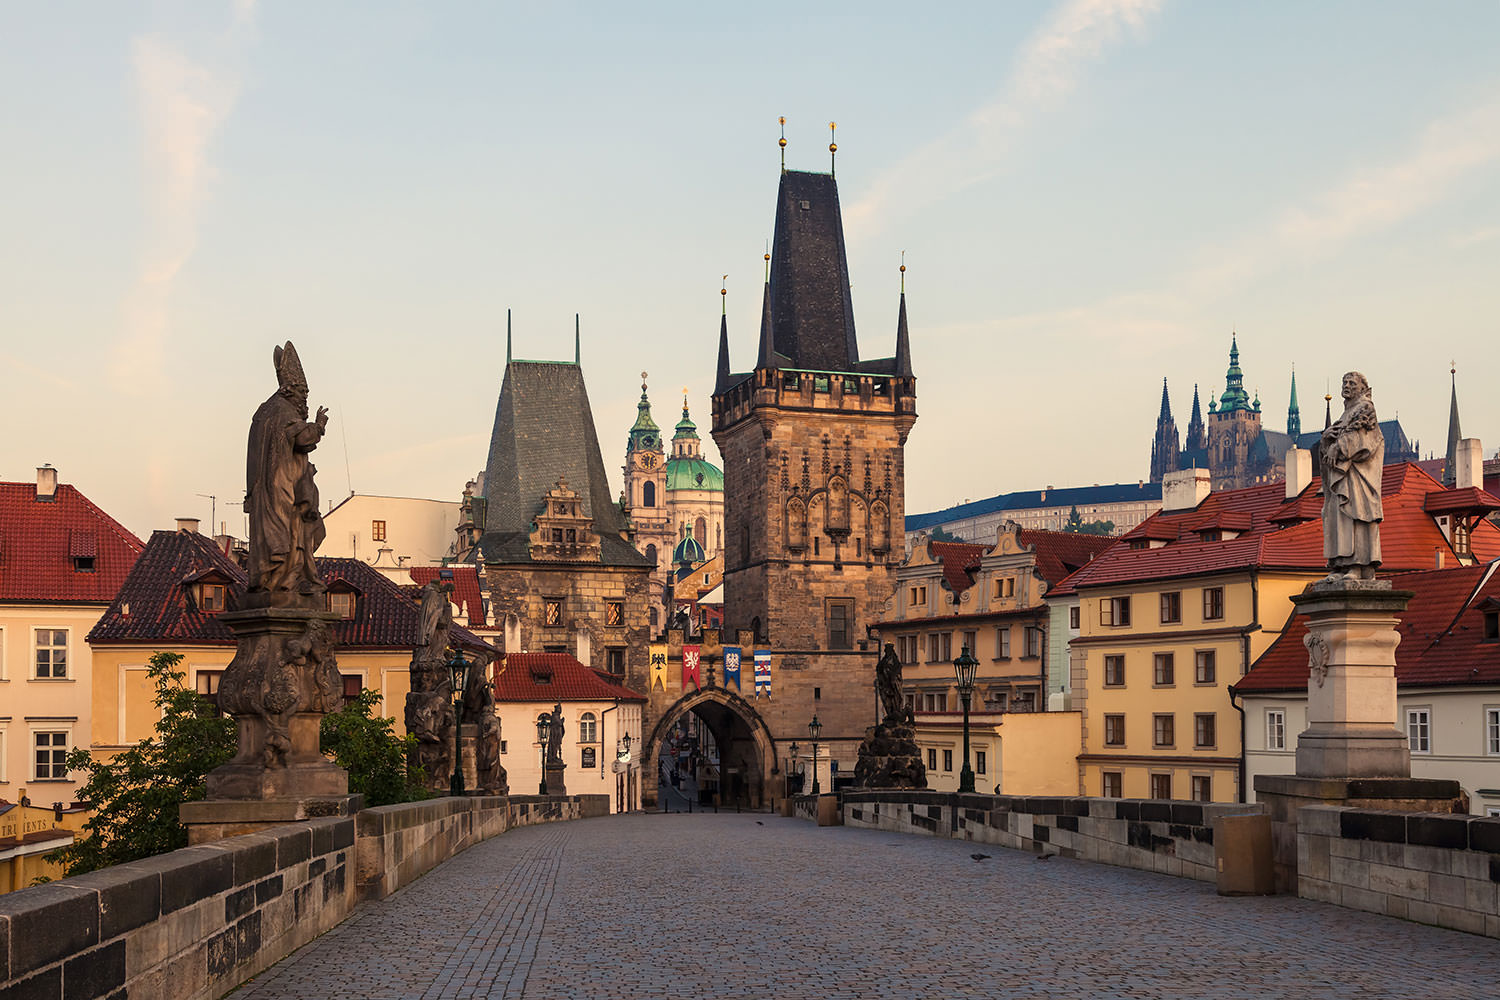 The Lesser Town Bridge Tower (Malostranská mostecká věž), Prague Castle (Pražský hrad) and Charles Bridge (Karlův most) at Sunrise, Prague, Czechia